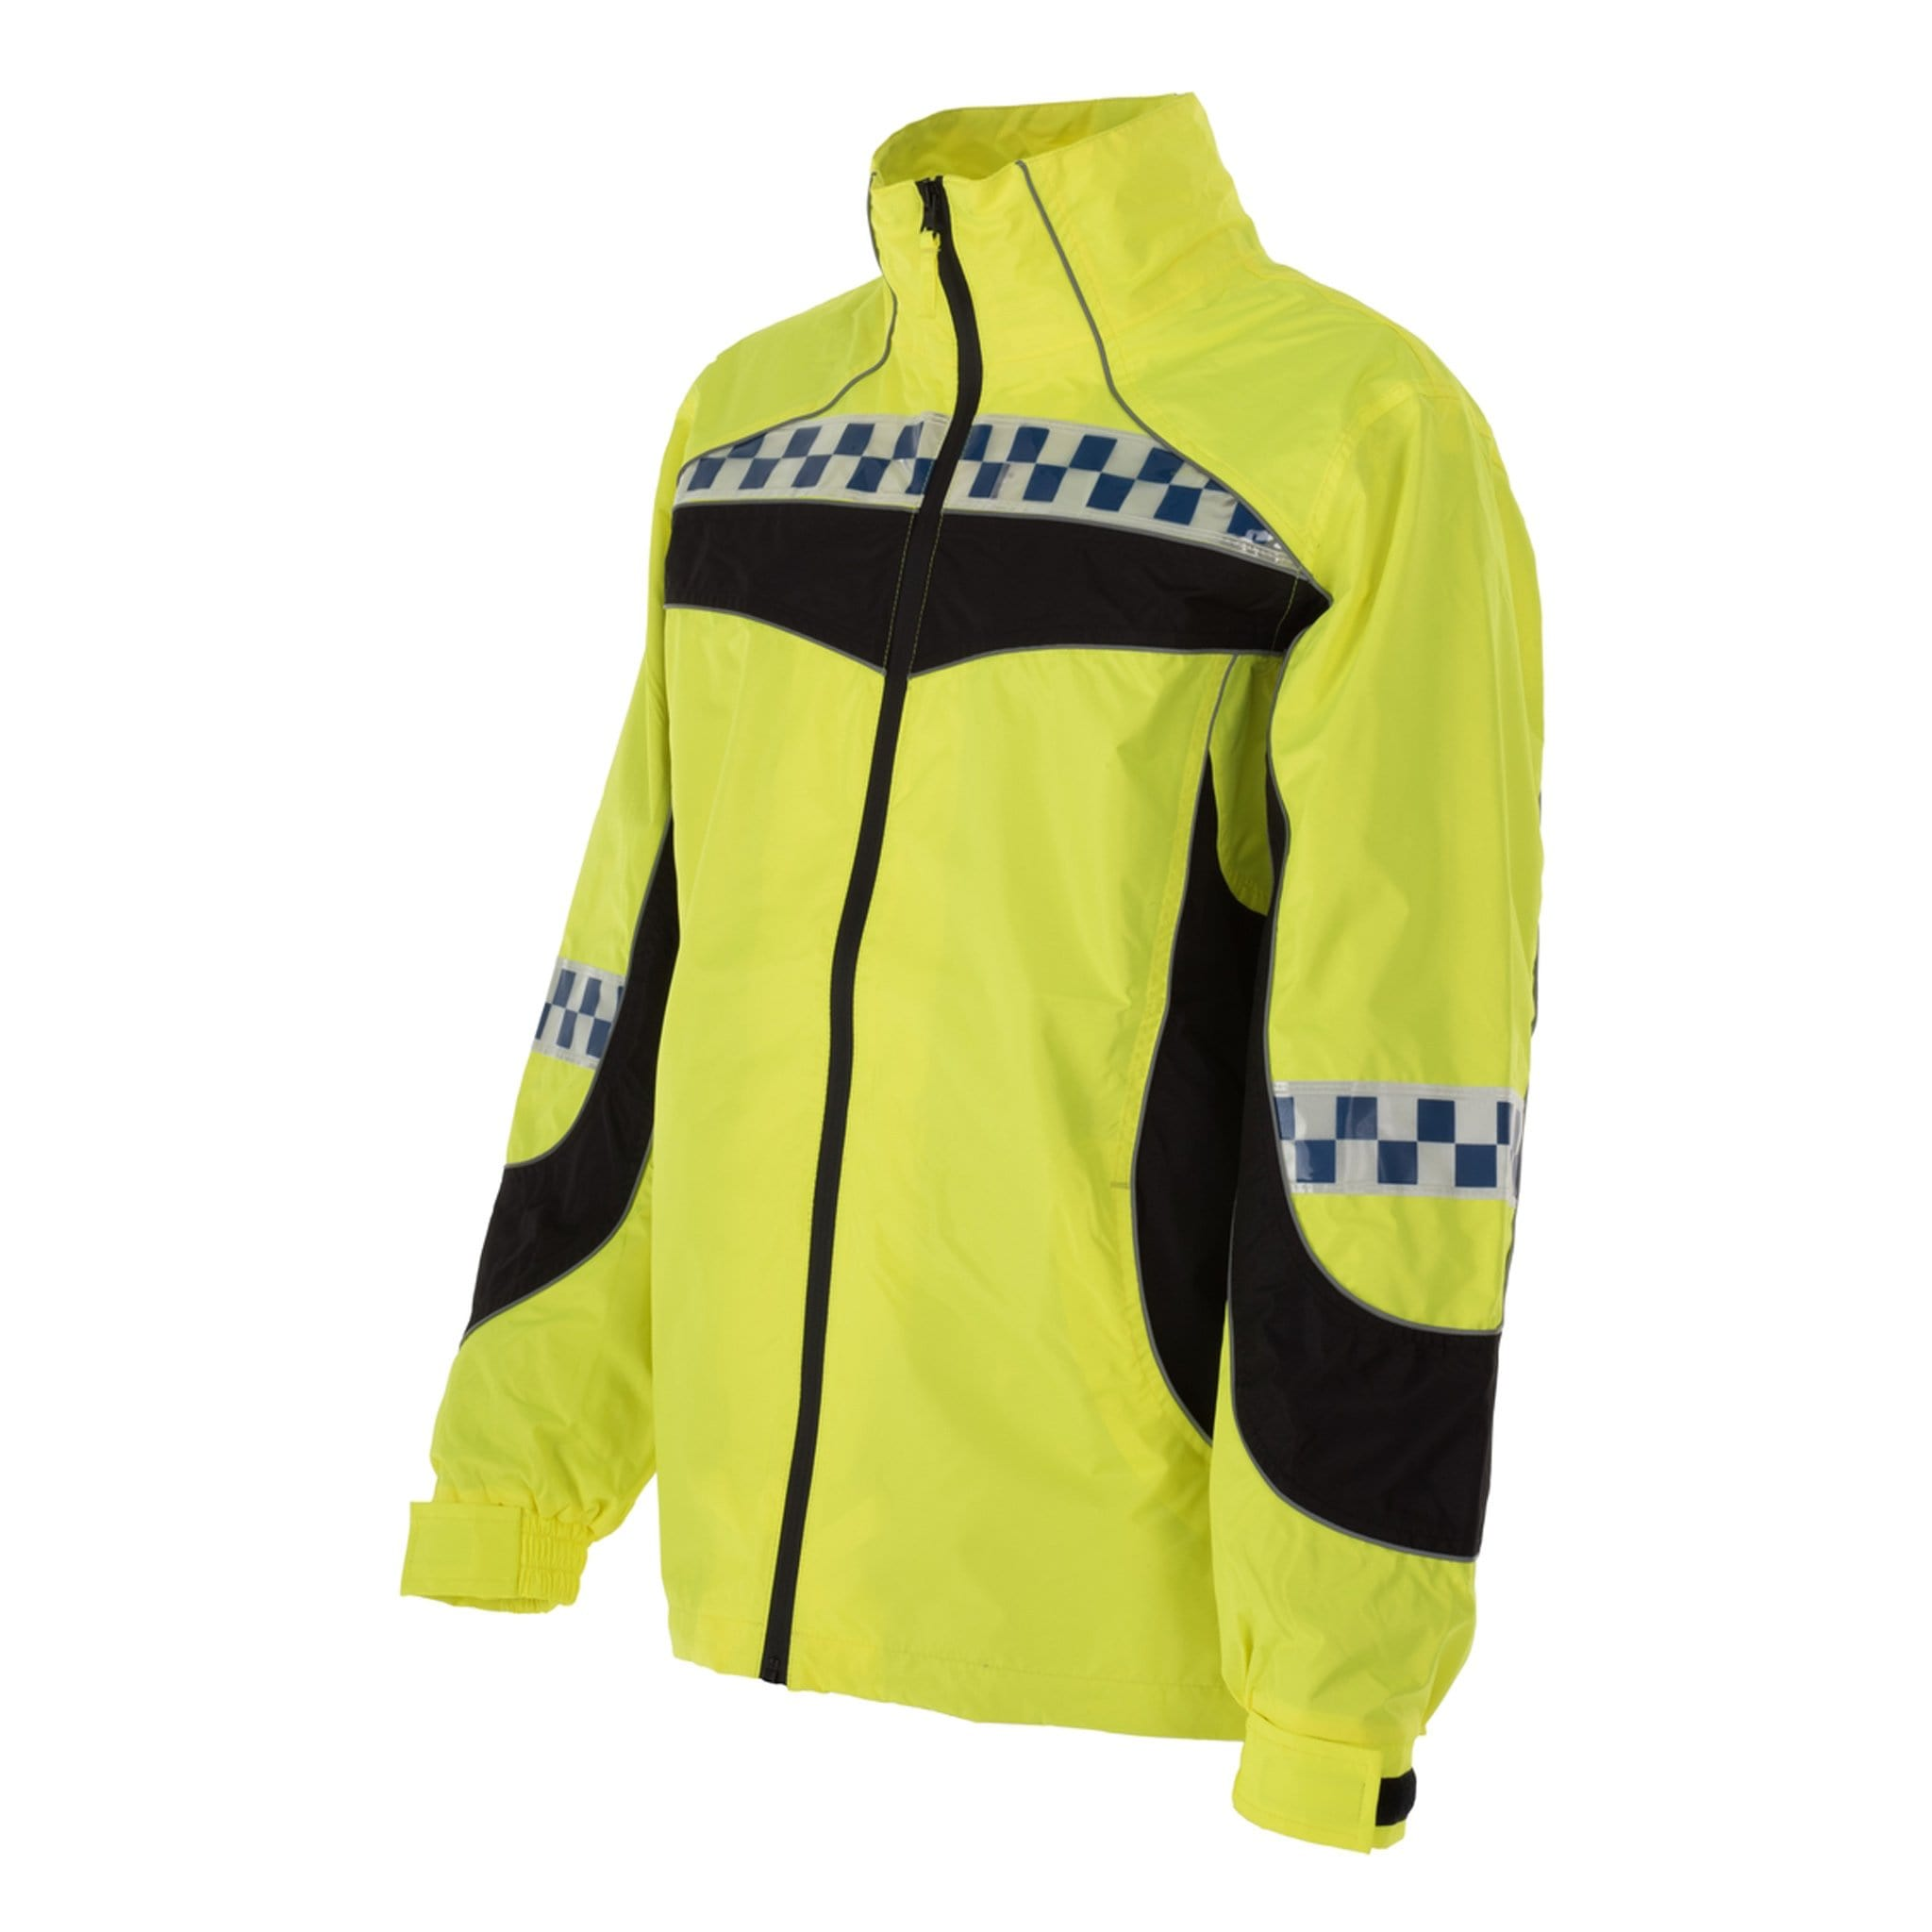 Equisafety Polite Lightweight Jacket Yellow Front View POLLWJO1